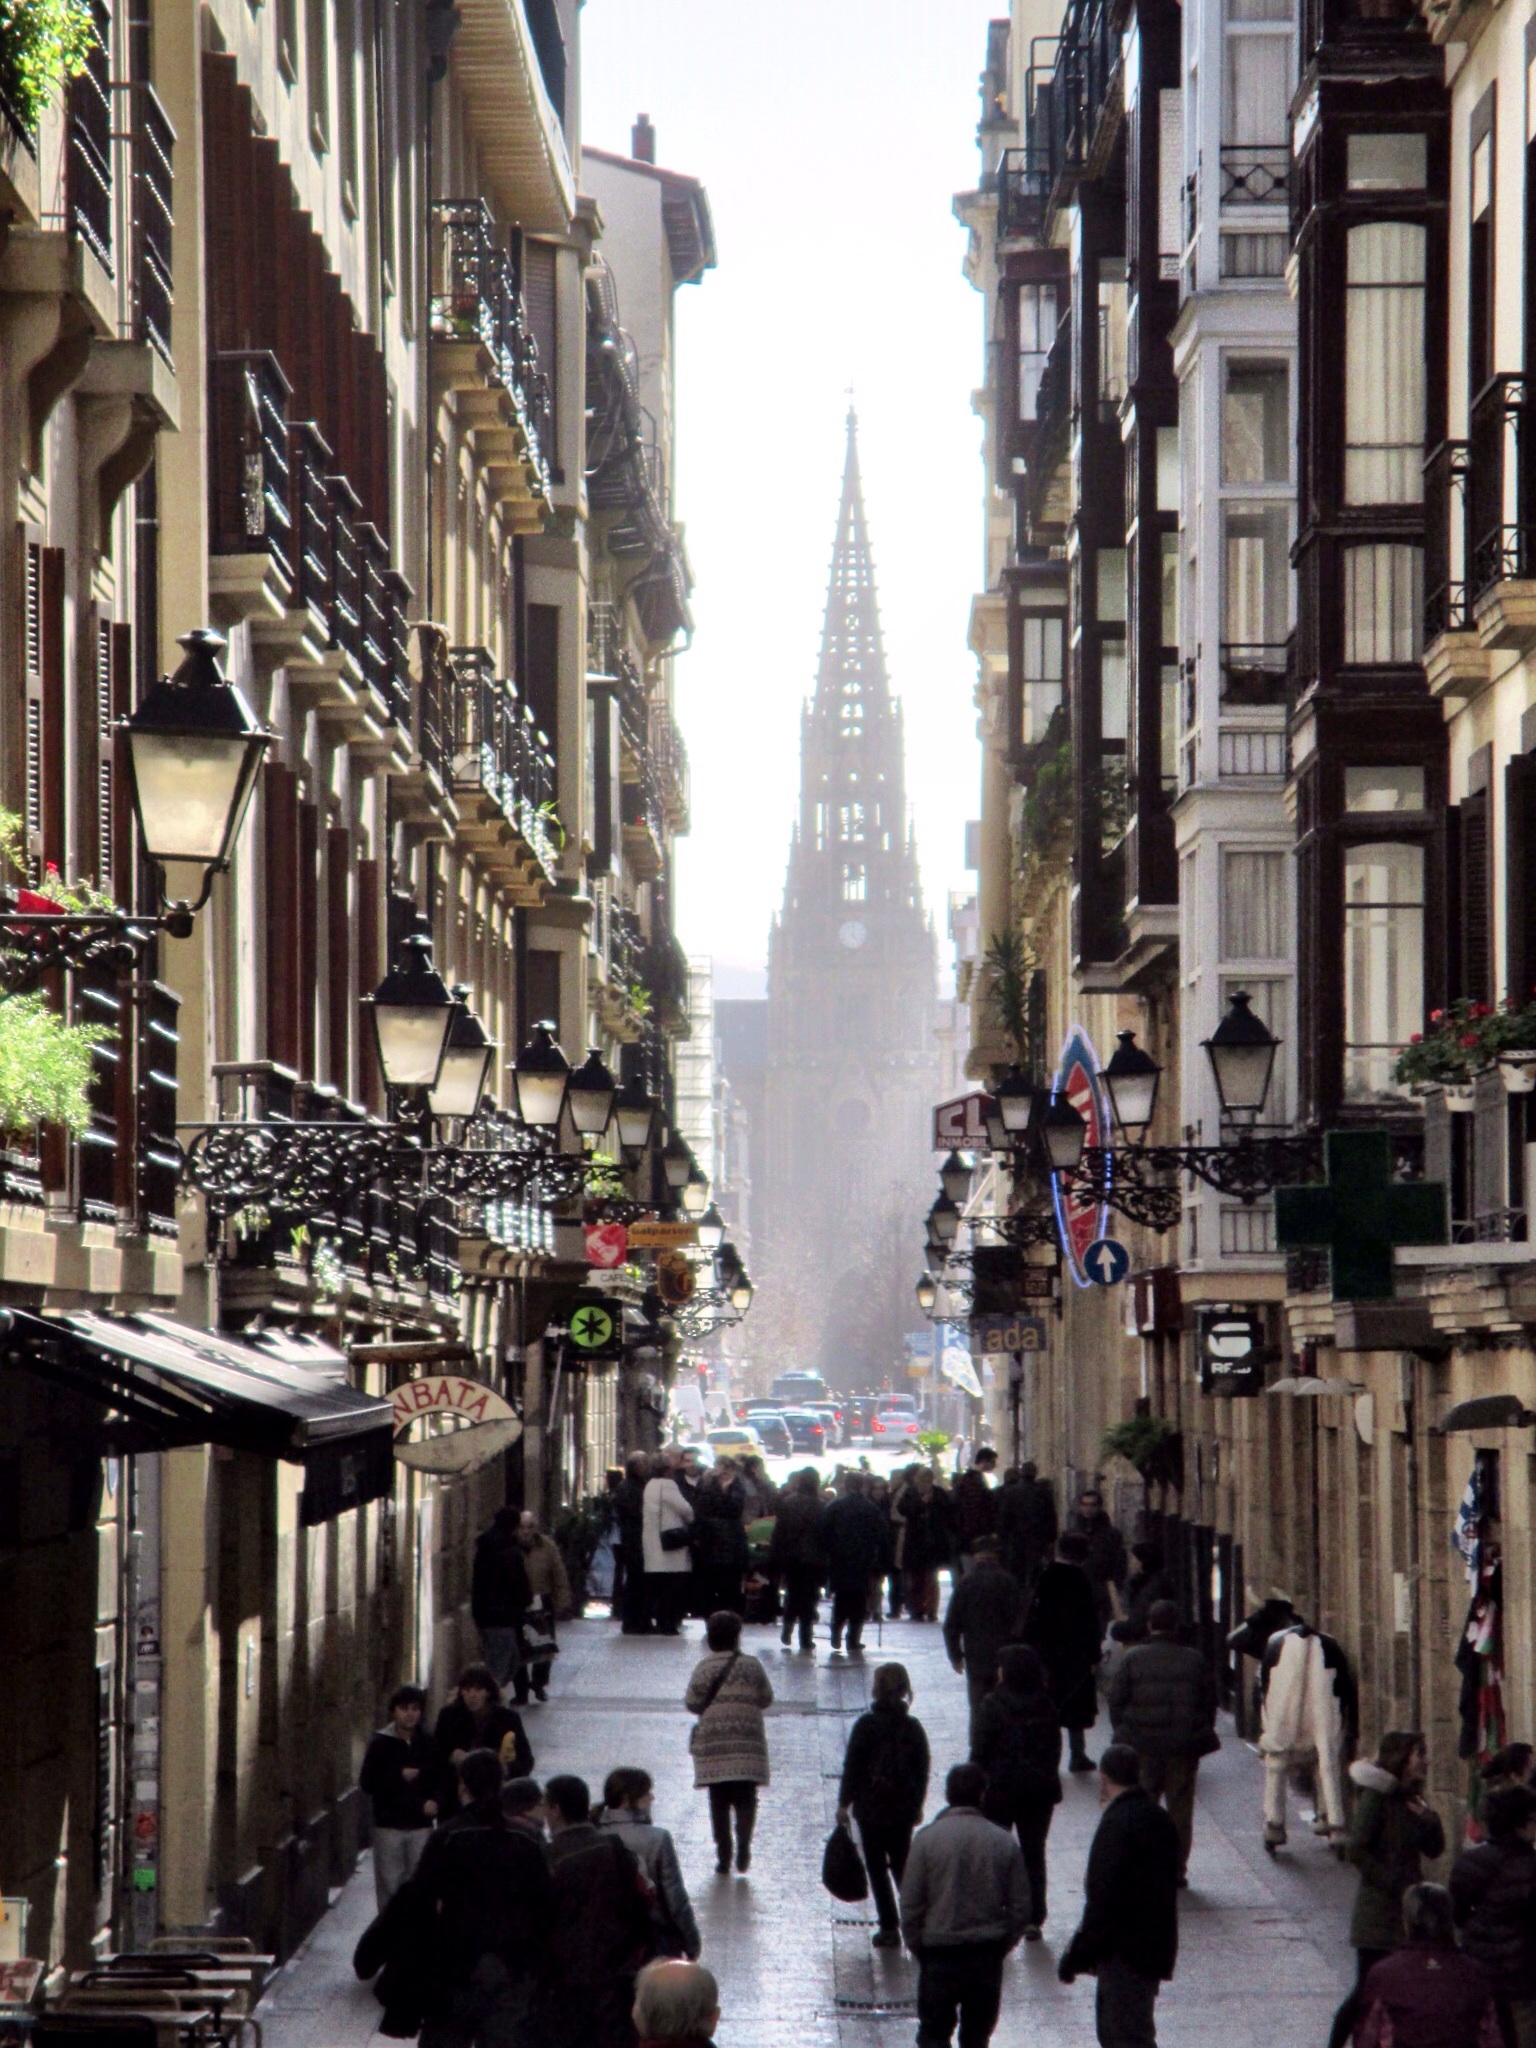 View down one of the streets in San Sebastián's Old Town